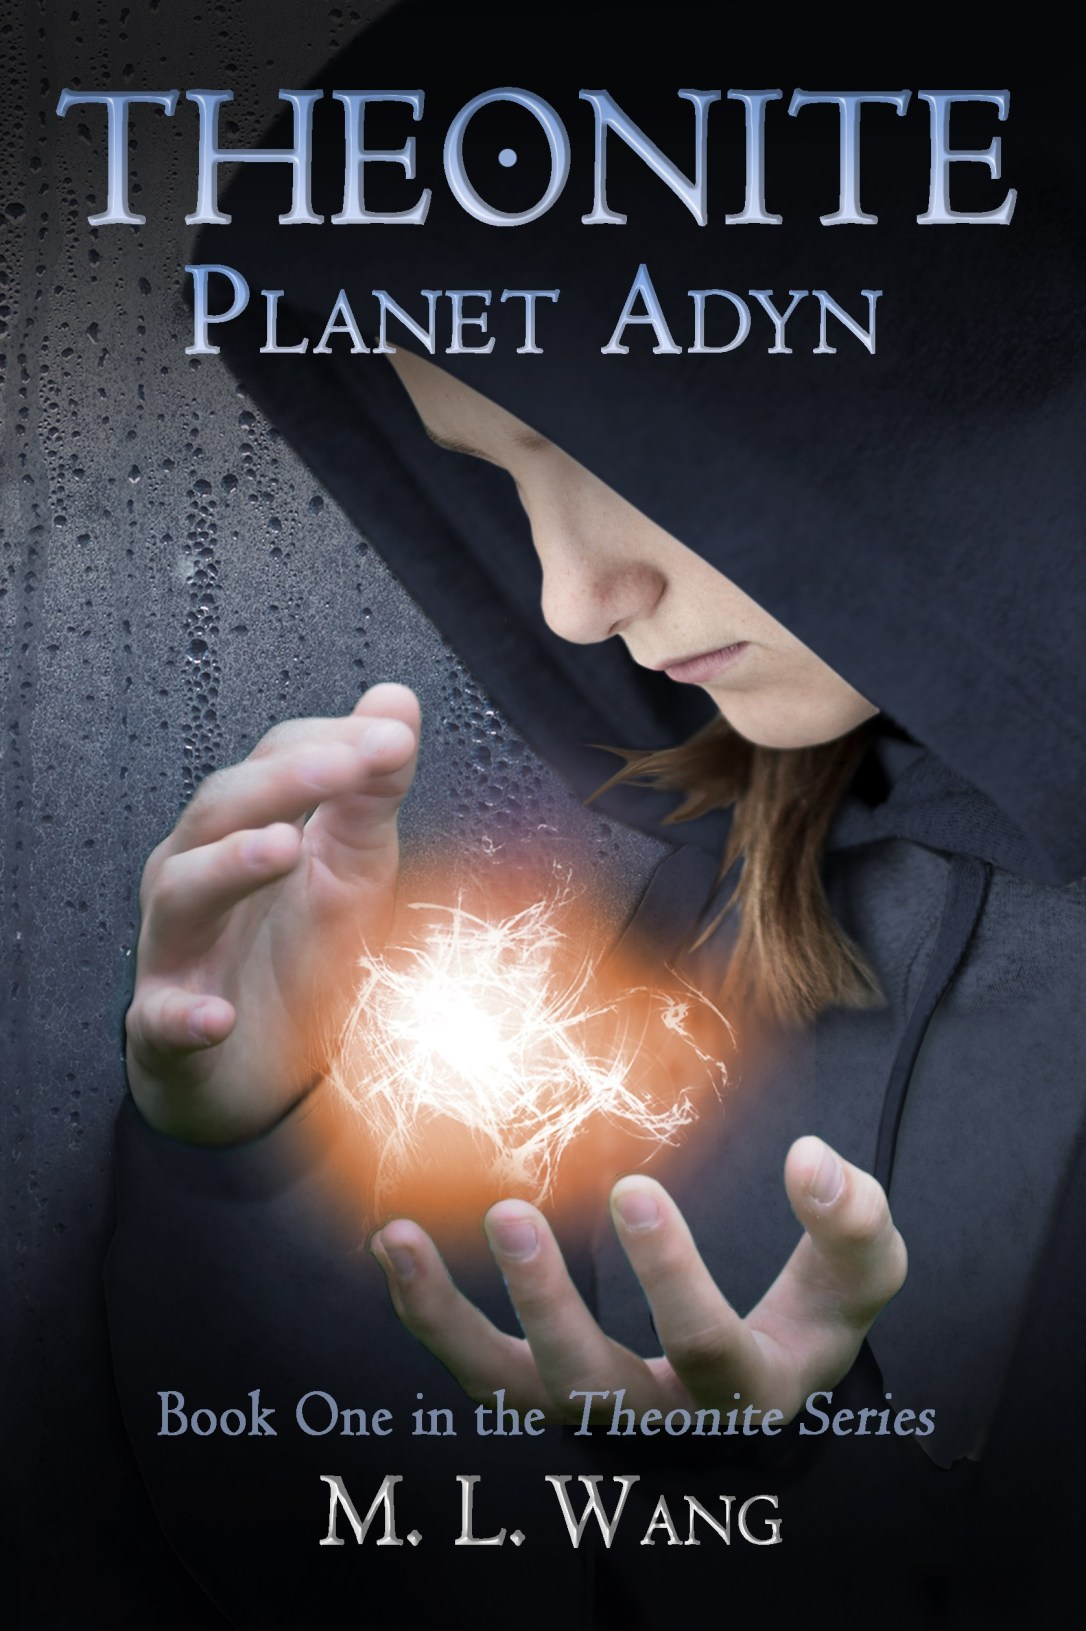 Theonite: Planet Adyn by M. L. Wang